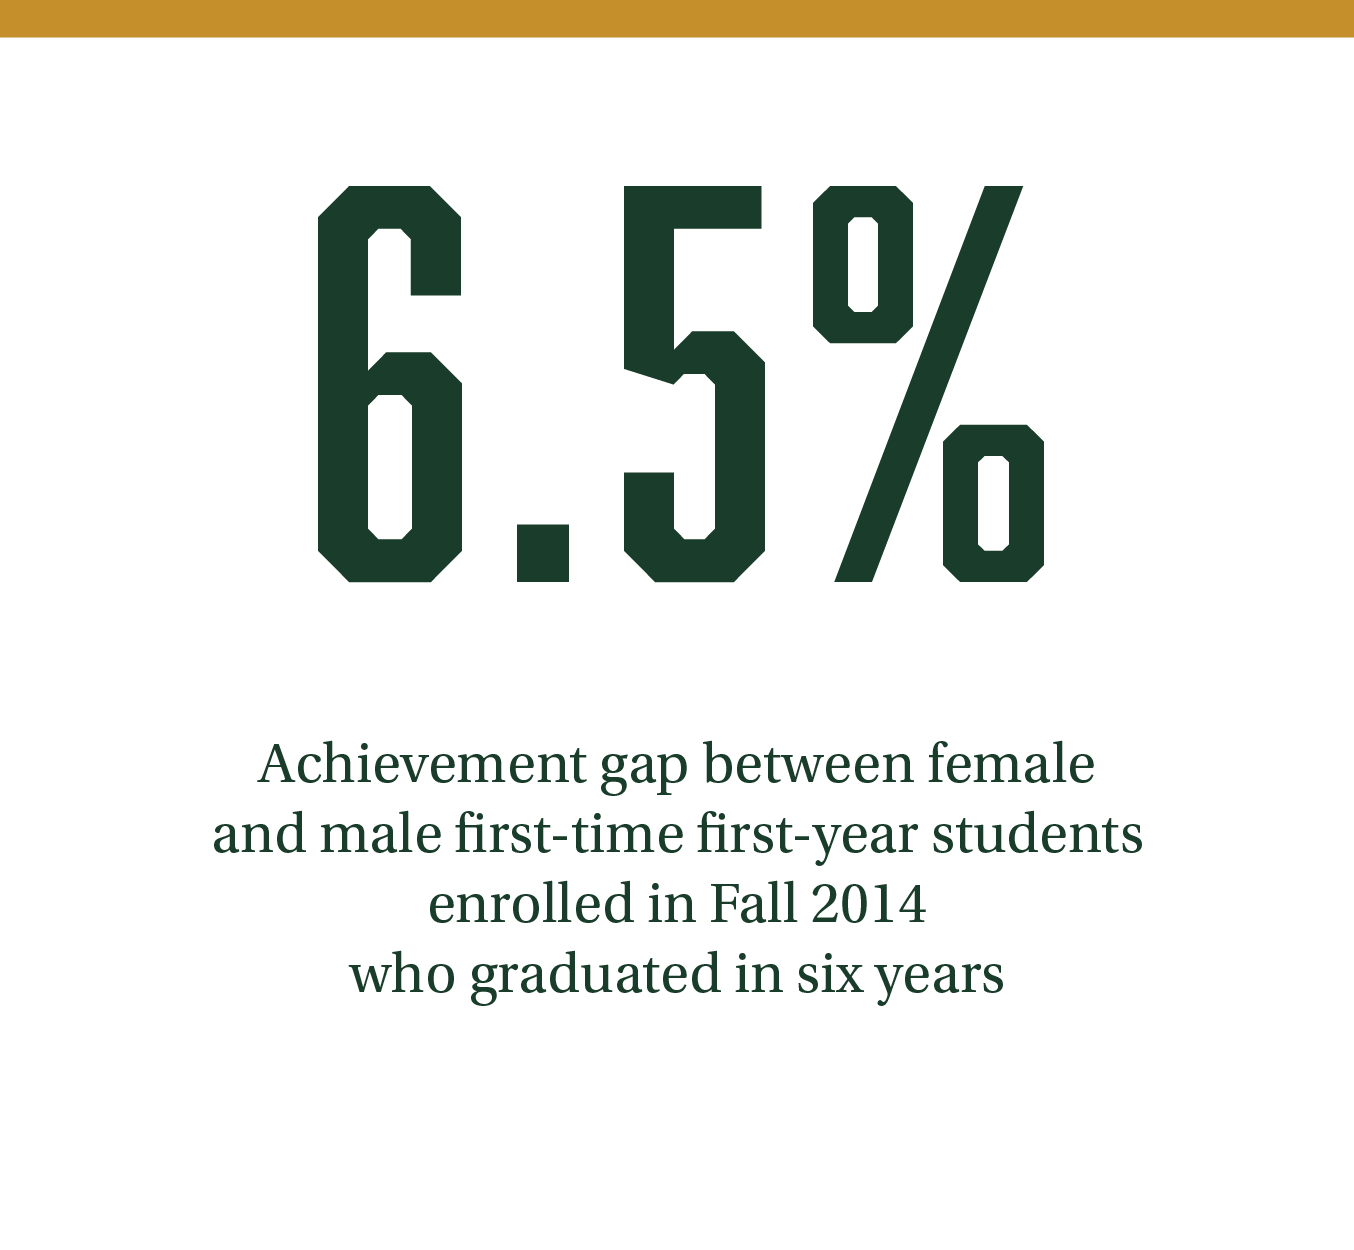 6.5%. Achievement gap between female and male first-time first-year students enrolled in Fall 2014 who graduated in six years.